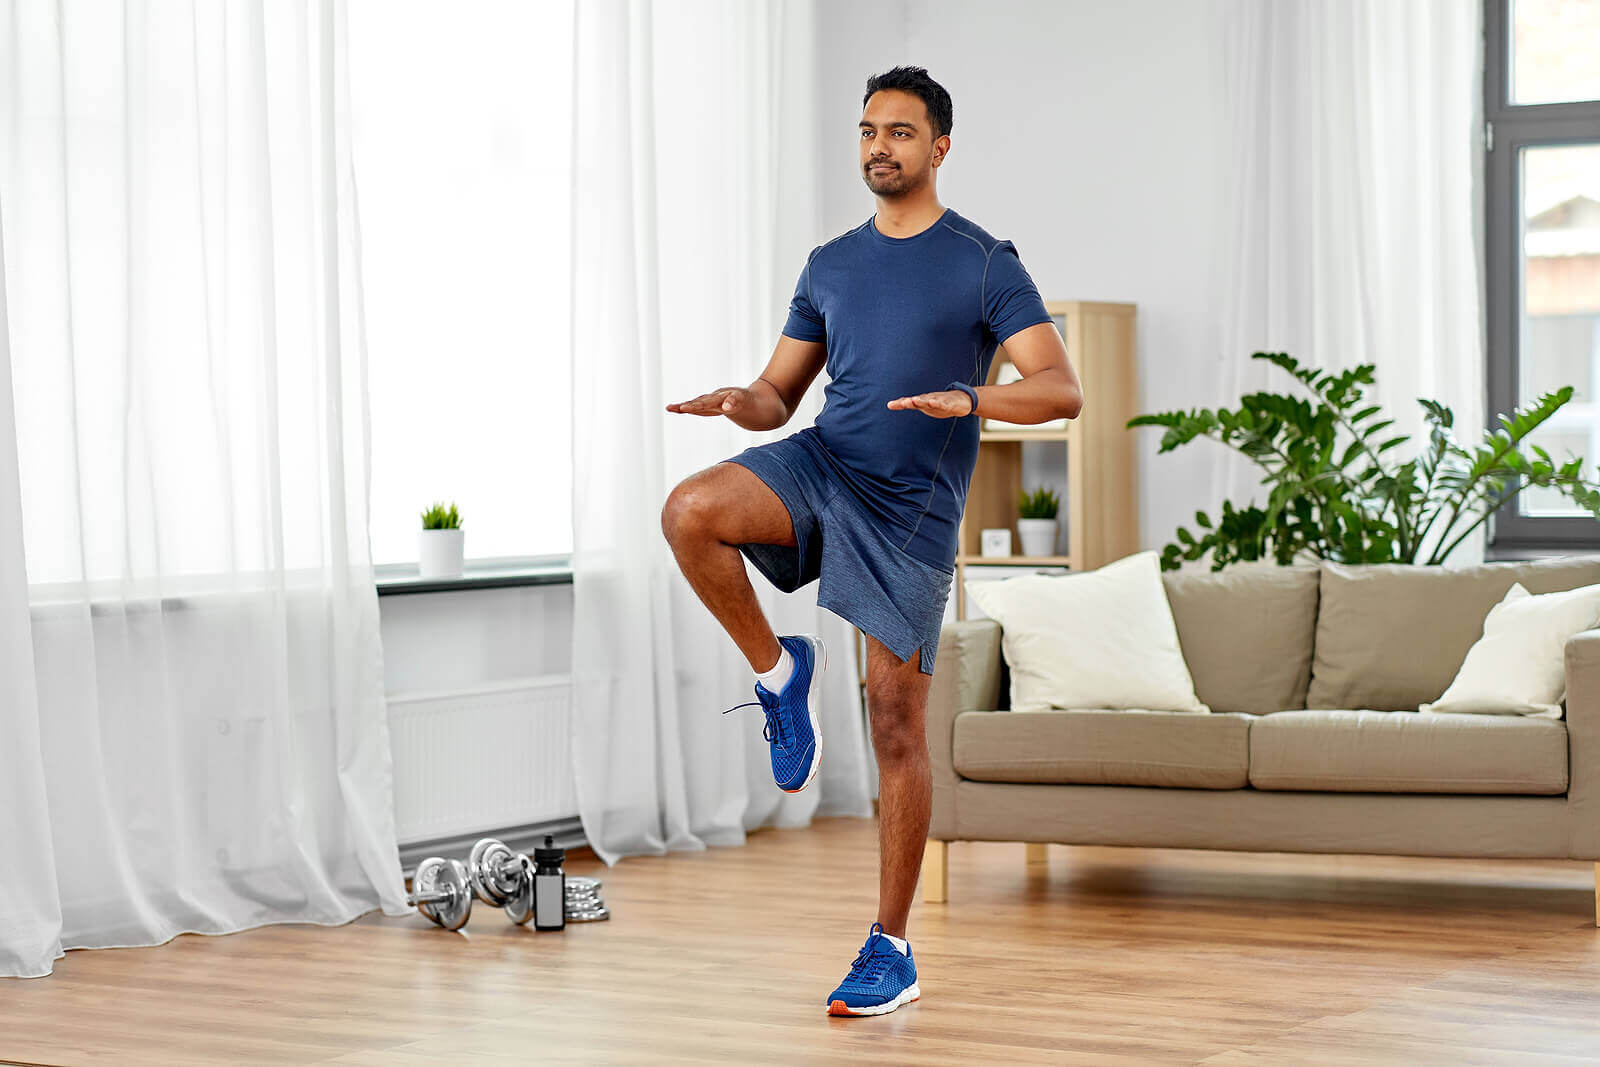 A man exercising in his living room.